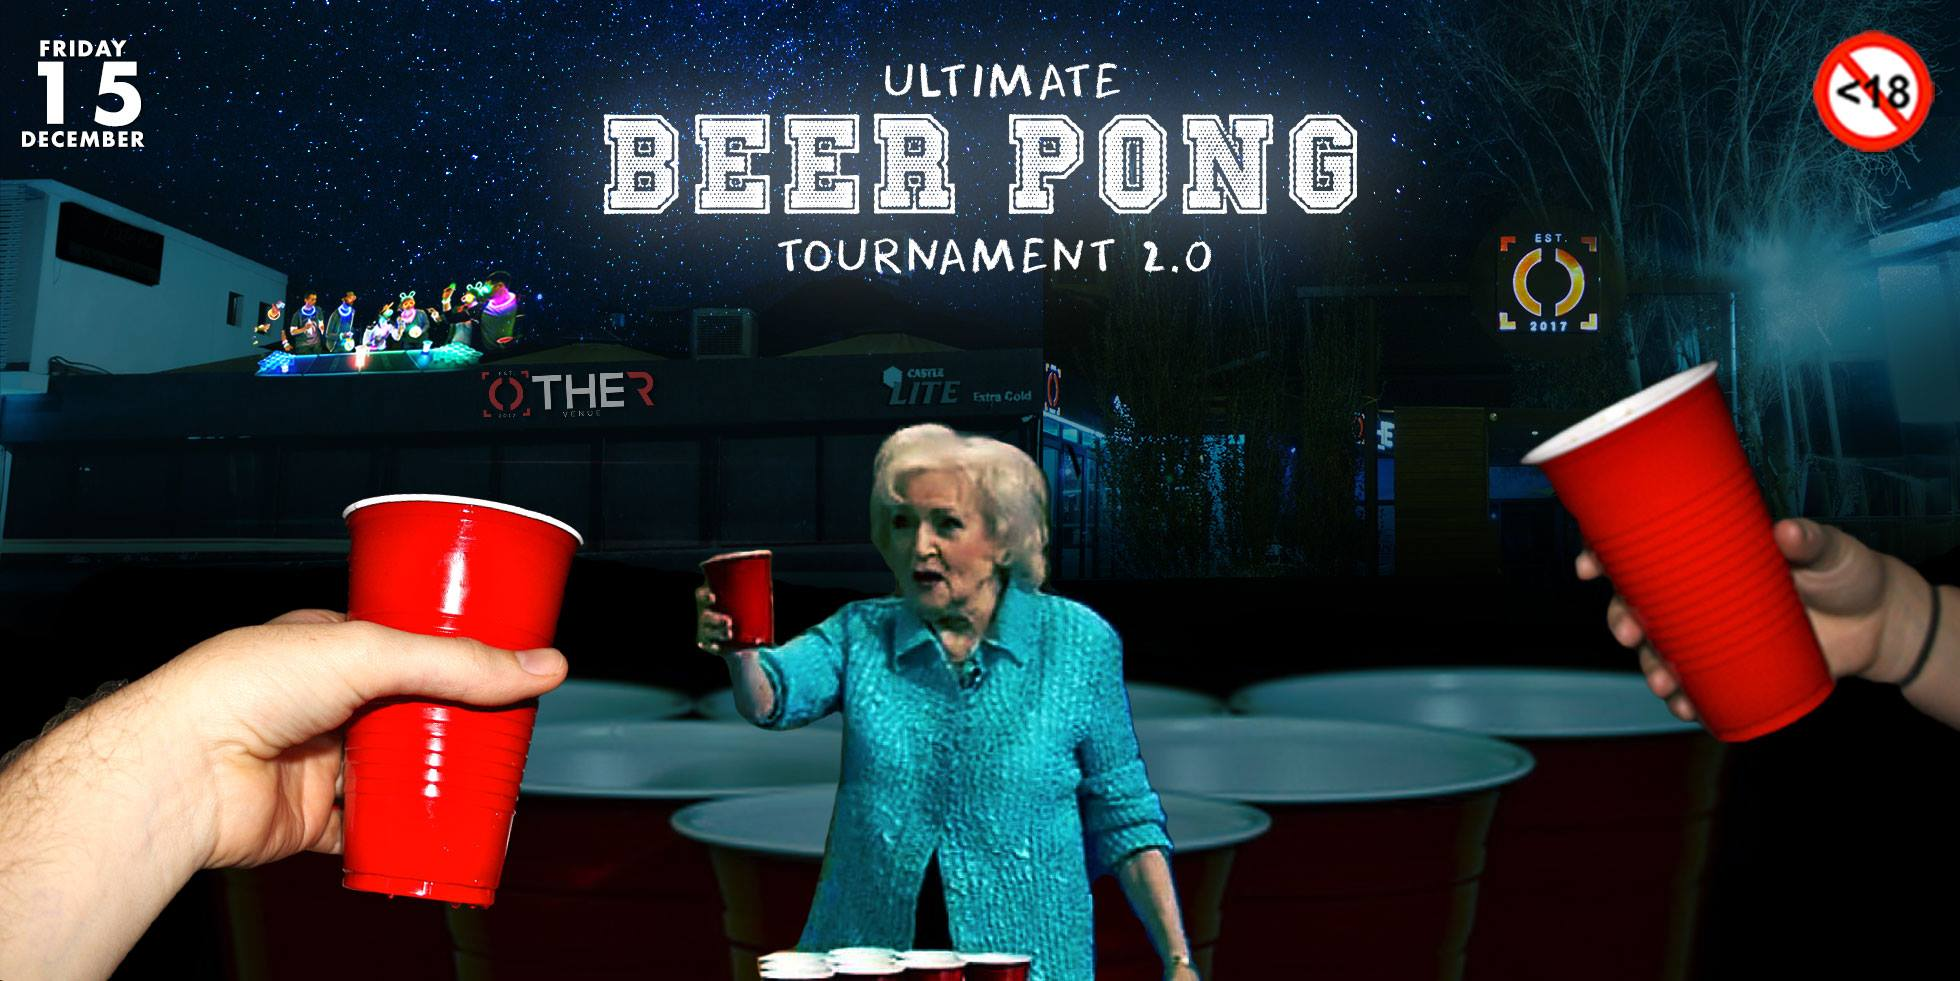 Ultimate Beer Pong Tournament 2.0 at The Other Venue